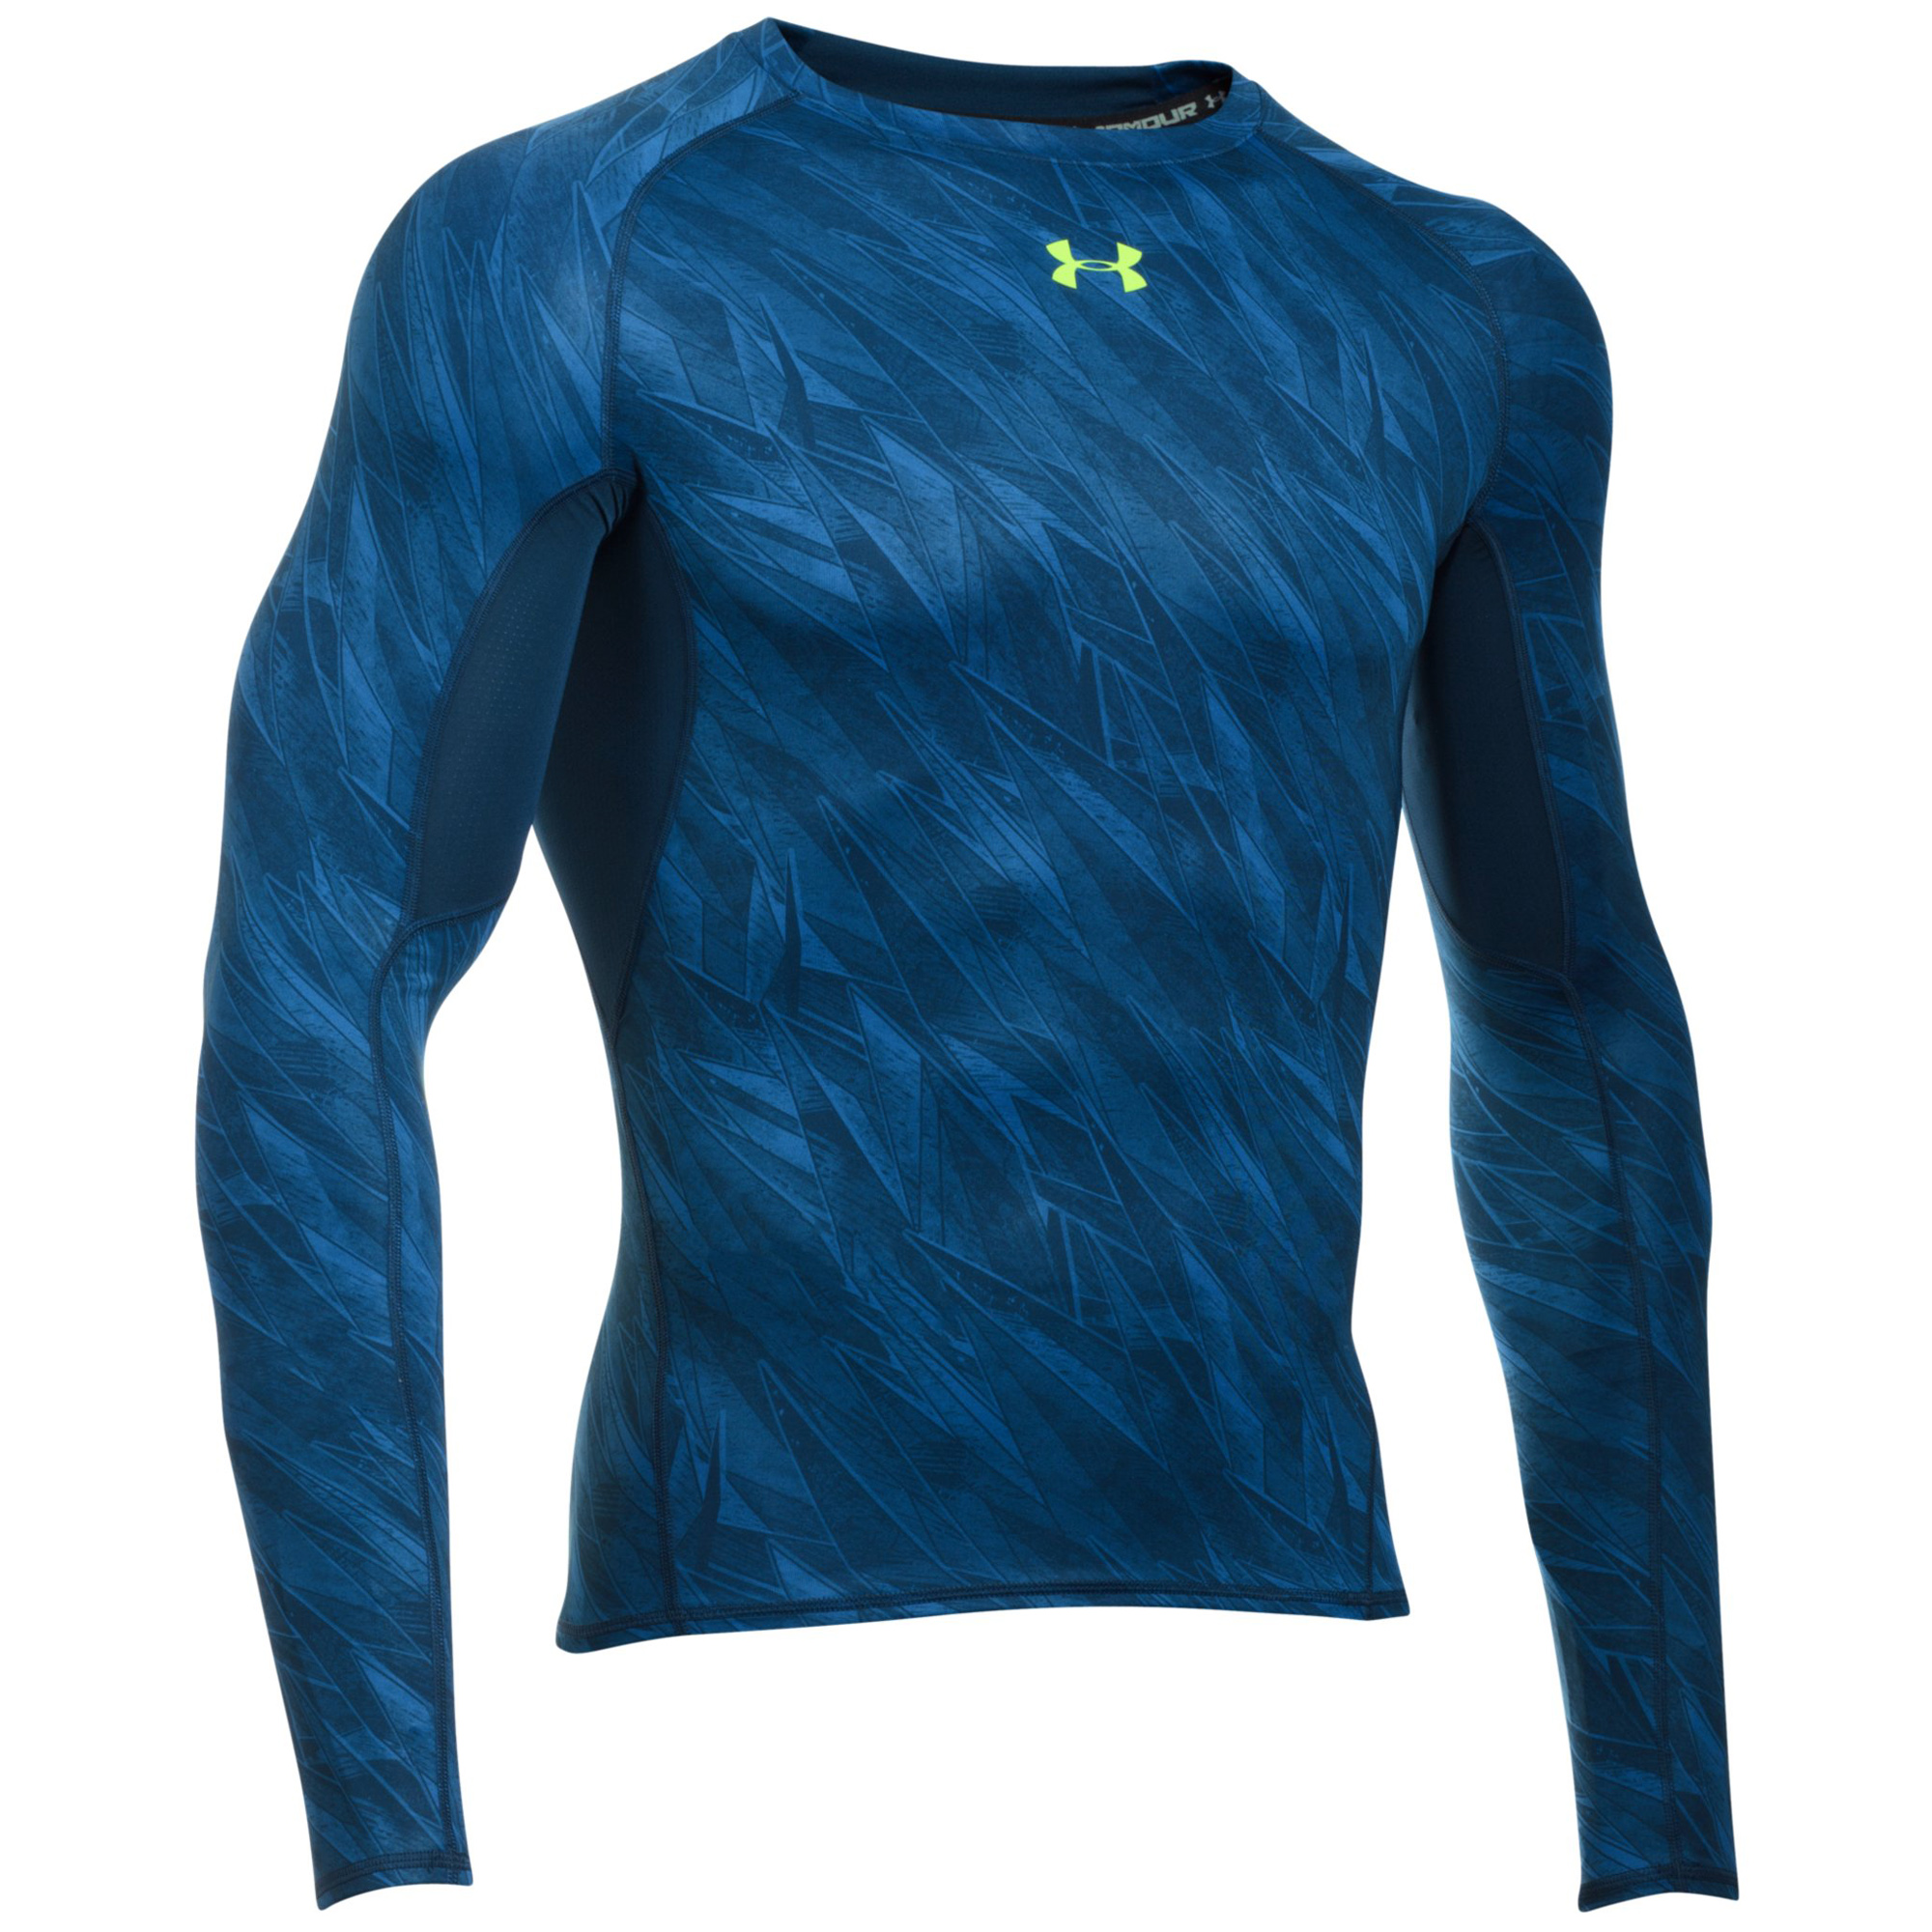 Under armour heatgear armour printed long sleeve for Printed under armour shirts